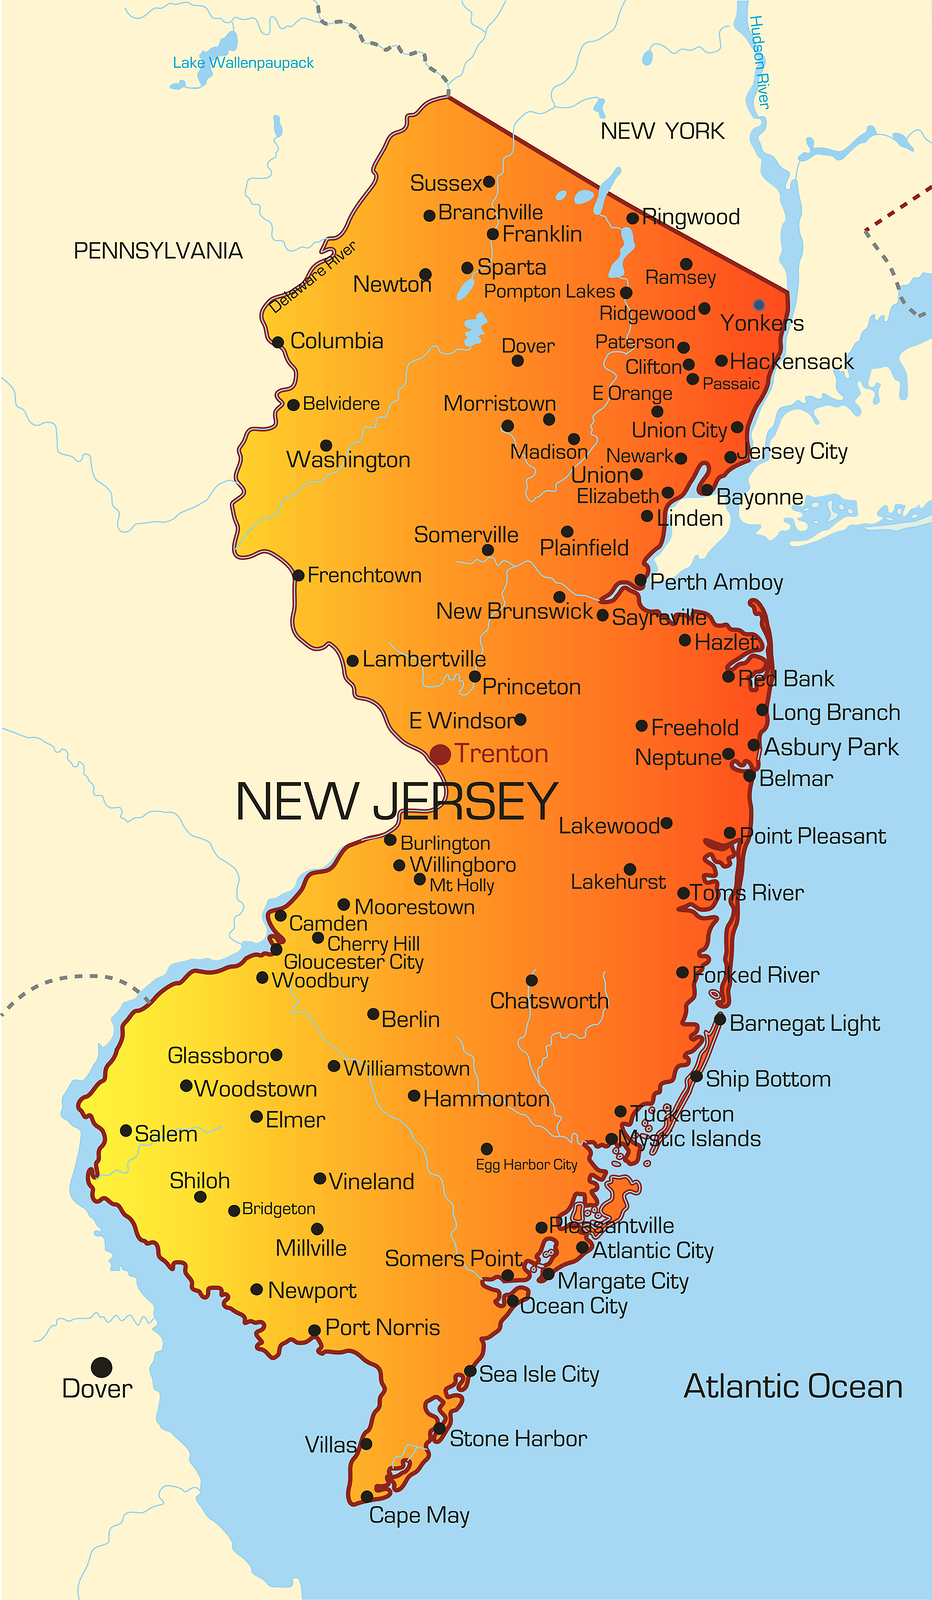 Cna requirements and state approved cna programs in new jersey xflitez Gallery